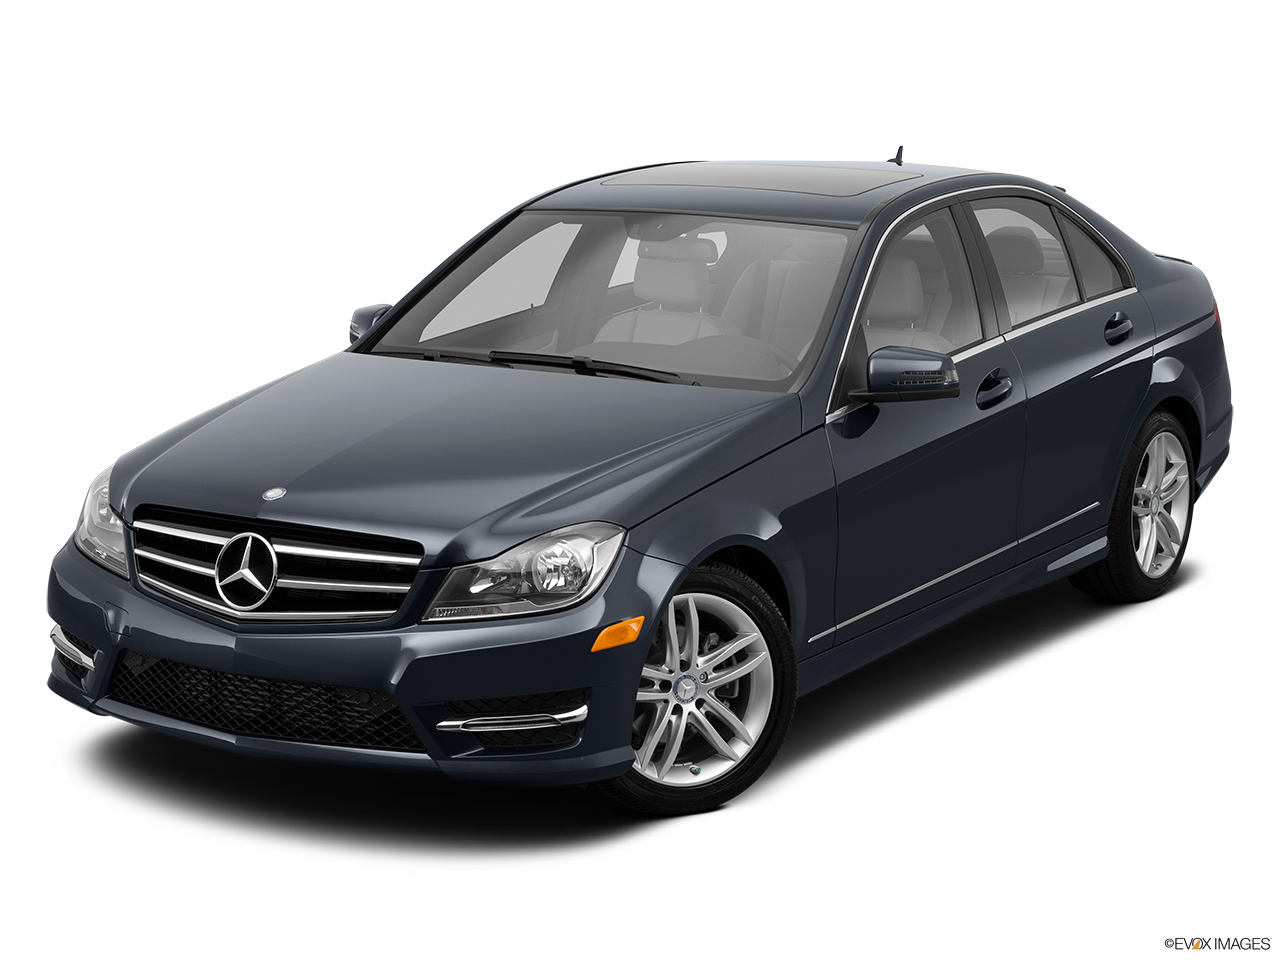 2014 mercedes benz c class sedan c250 luxury rwd. Black Bedroom Furniture Sets. Home Design Ideas